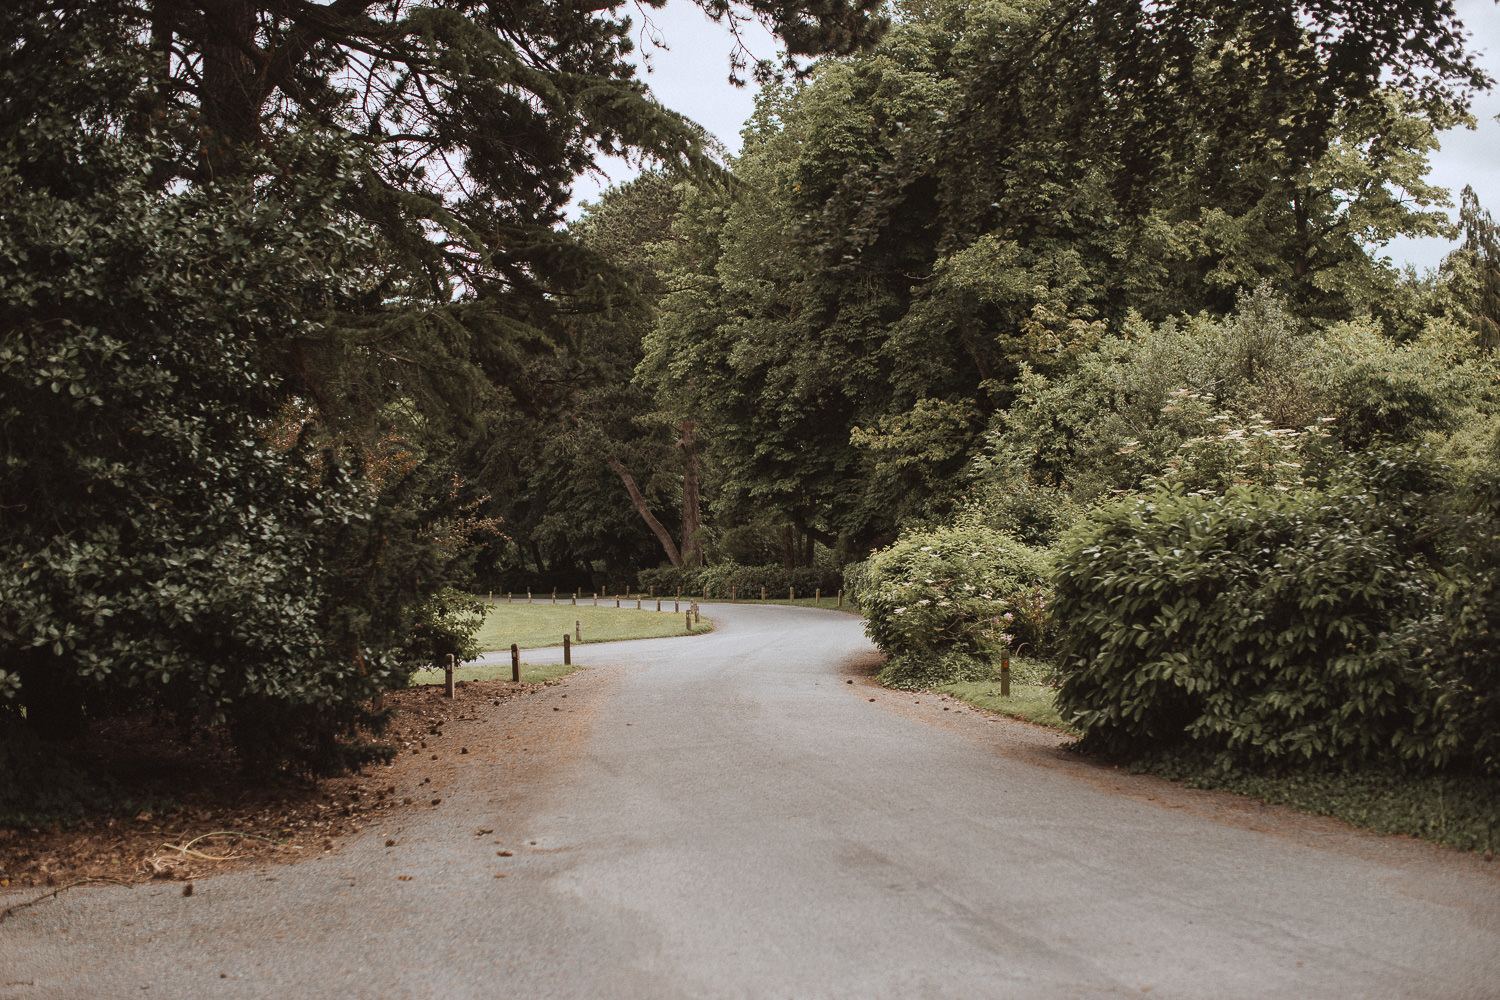 The drive at Inglewood Manor, Cheshire